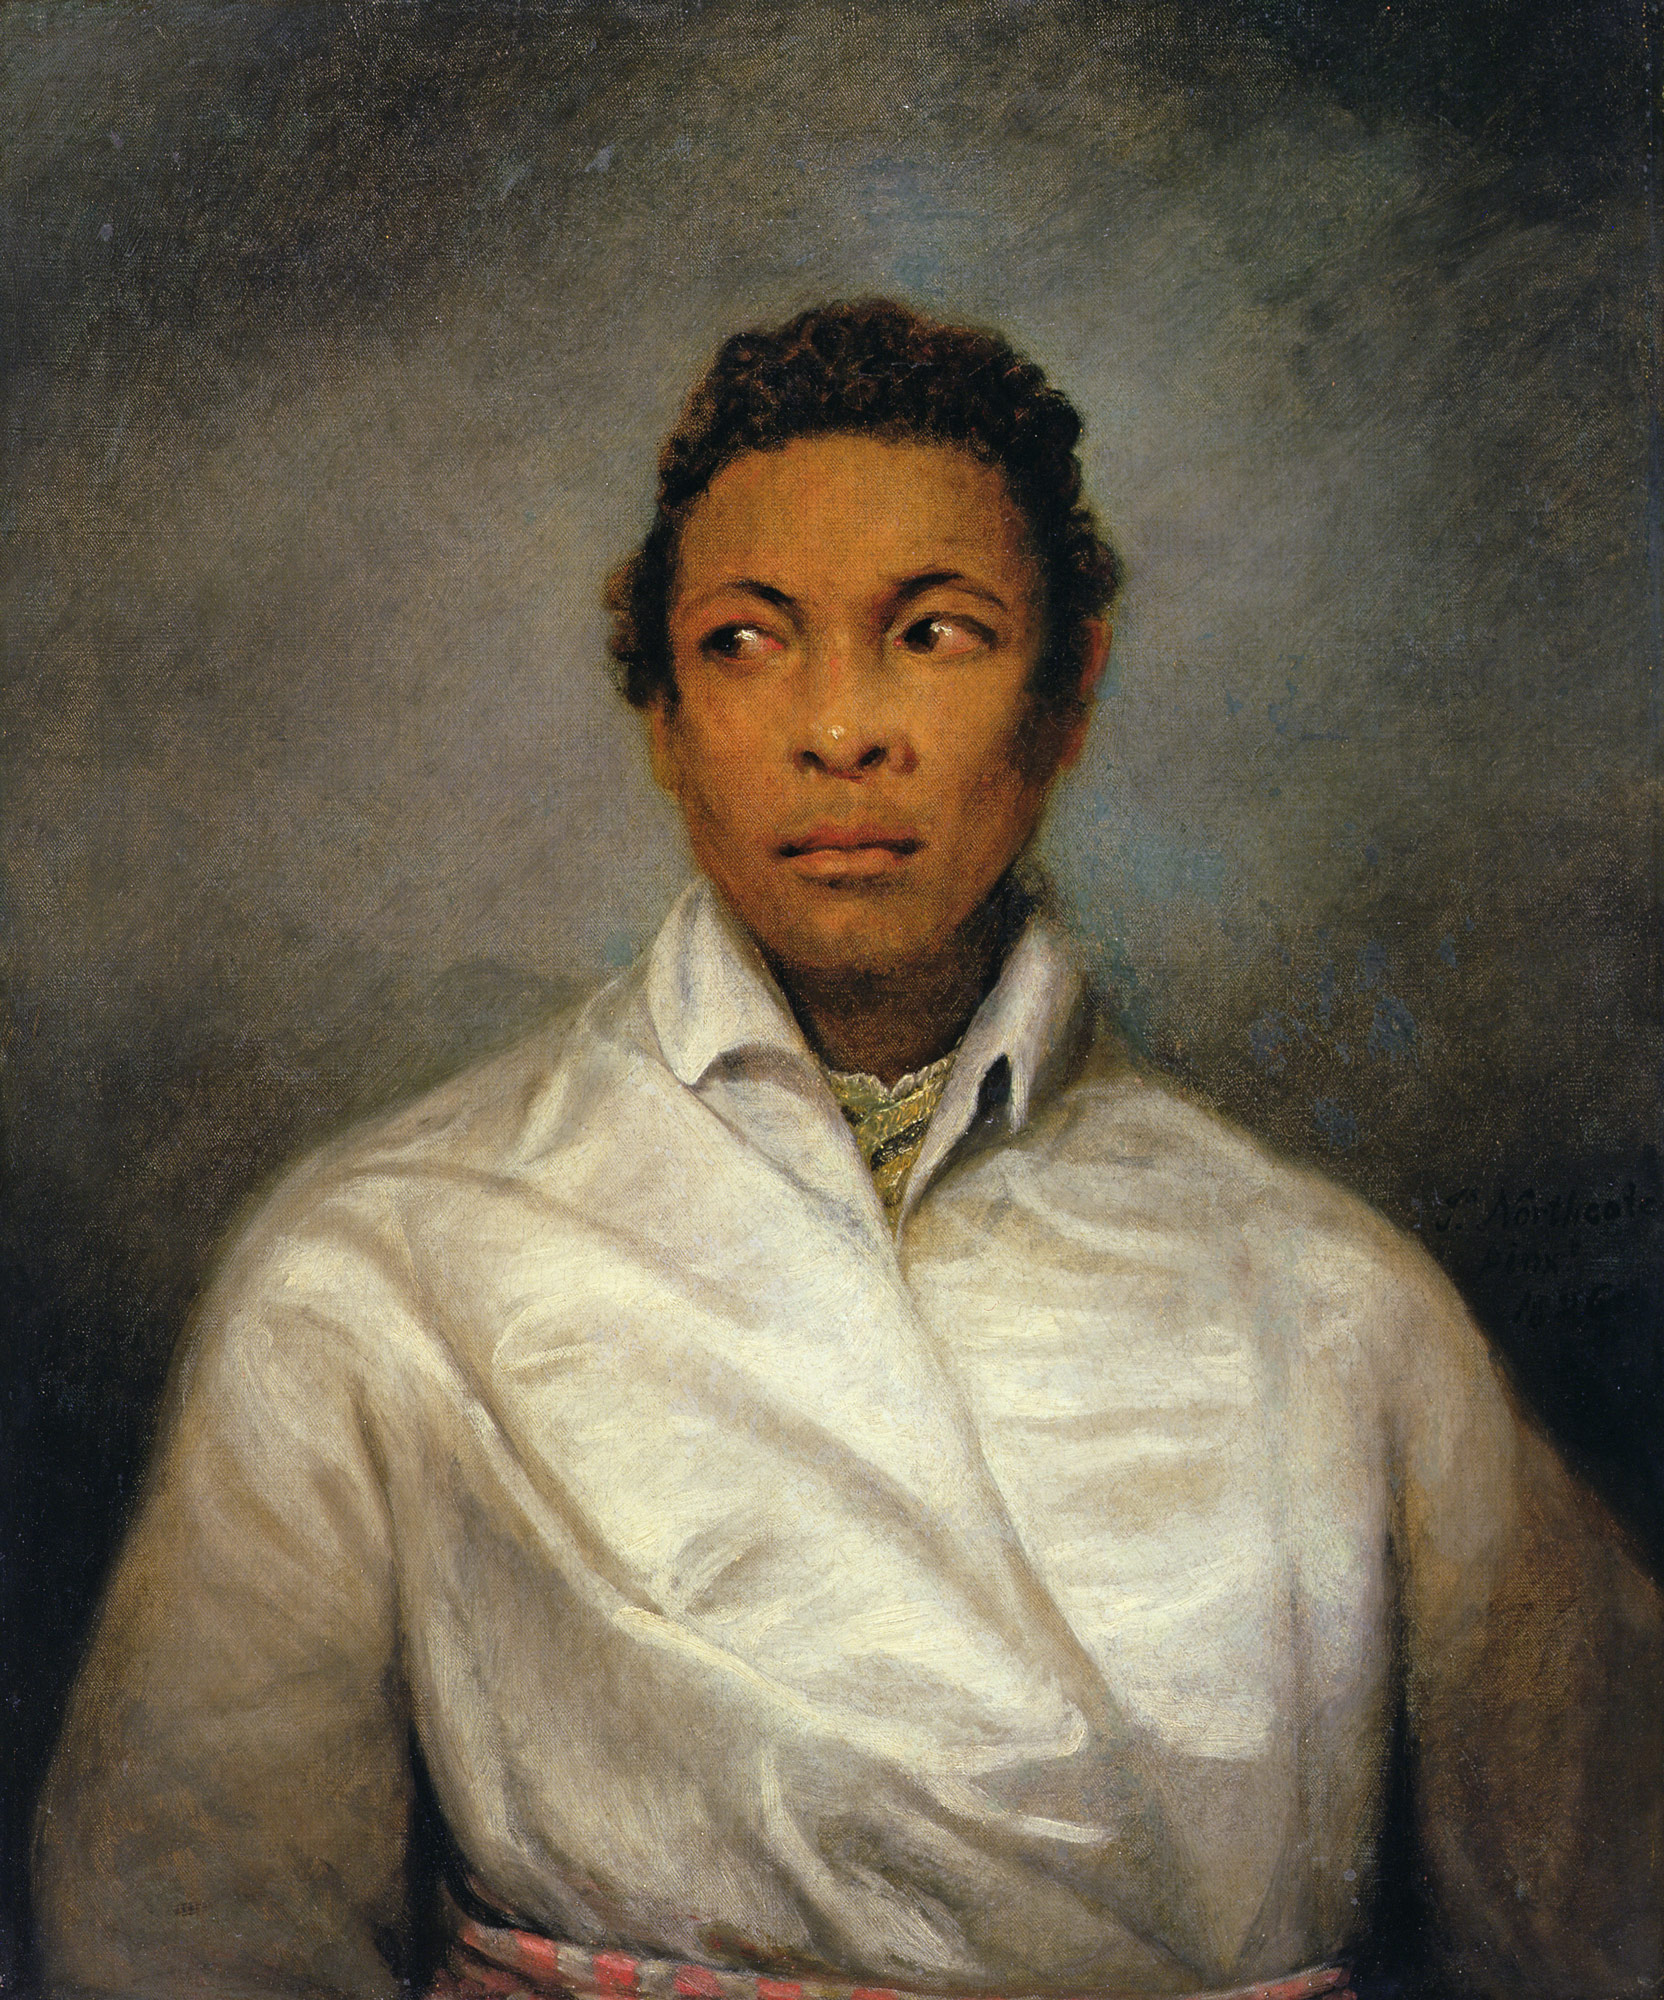 Sample Essay For High School Students Painting Of Ira Aldridge As Othello How To Write A Good Proposal Essay also Health And Fitness Essays Racism Misogyny And Motiveless Malignity In Othello  The British  Science Vs Religion Essay